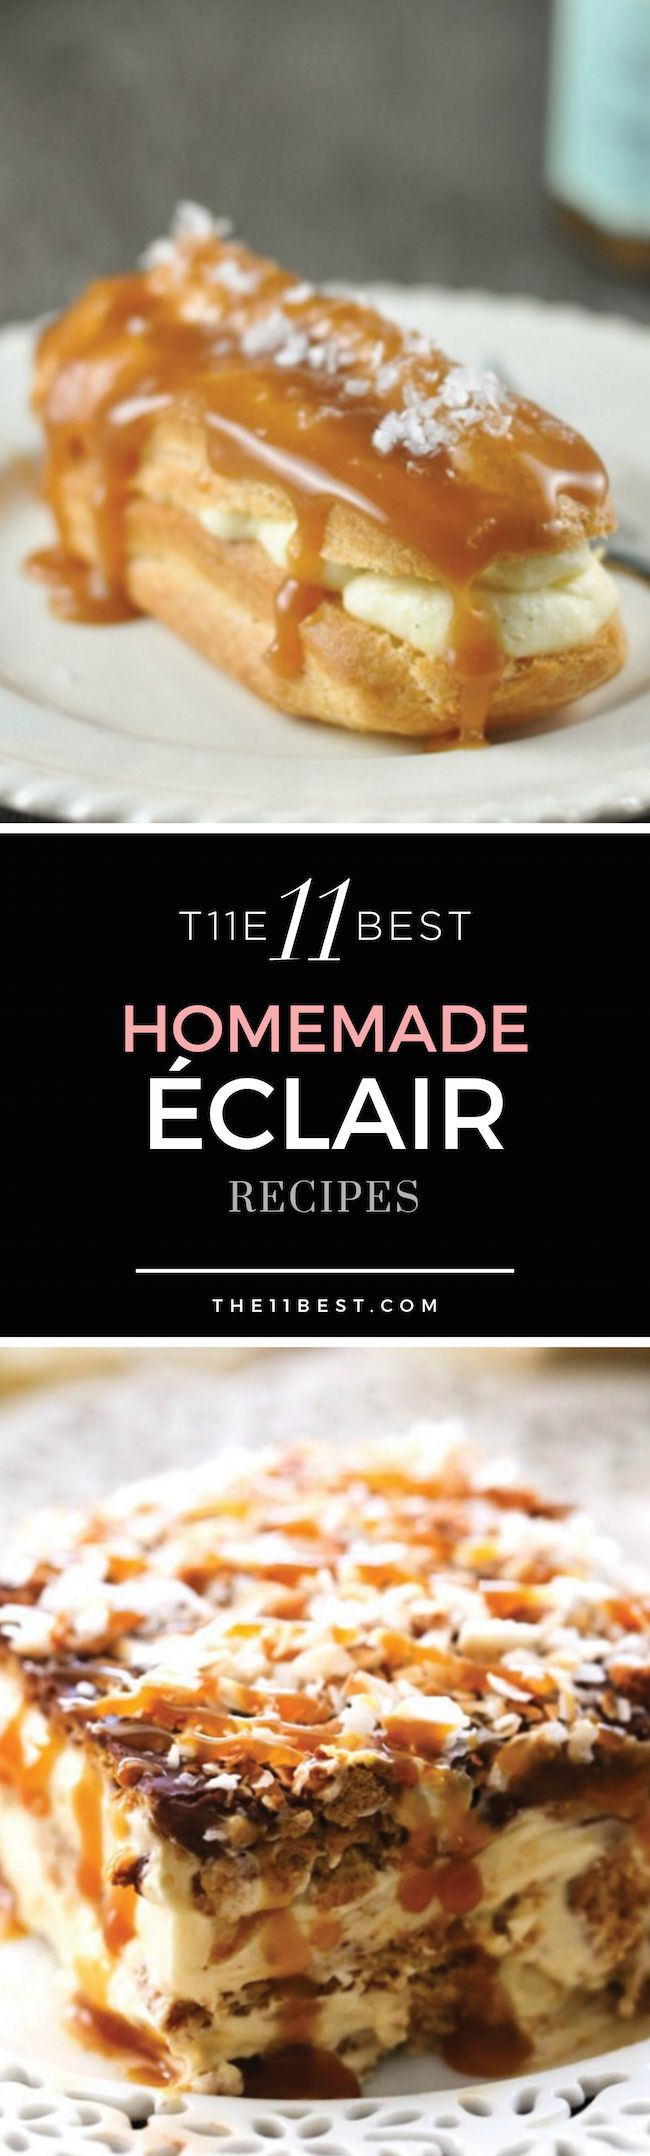 Eclair recipes